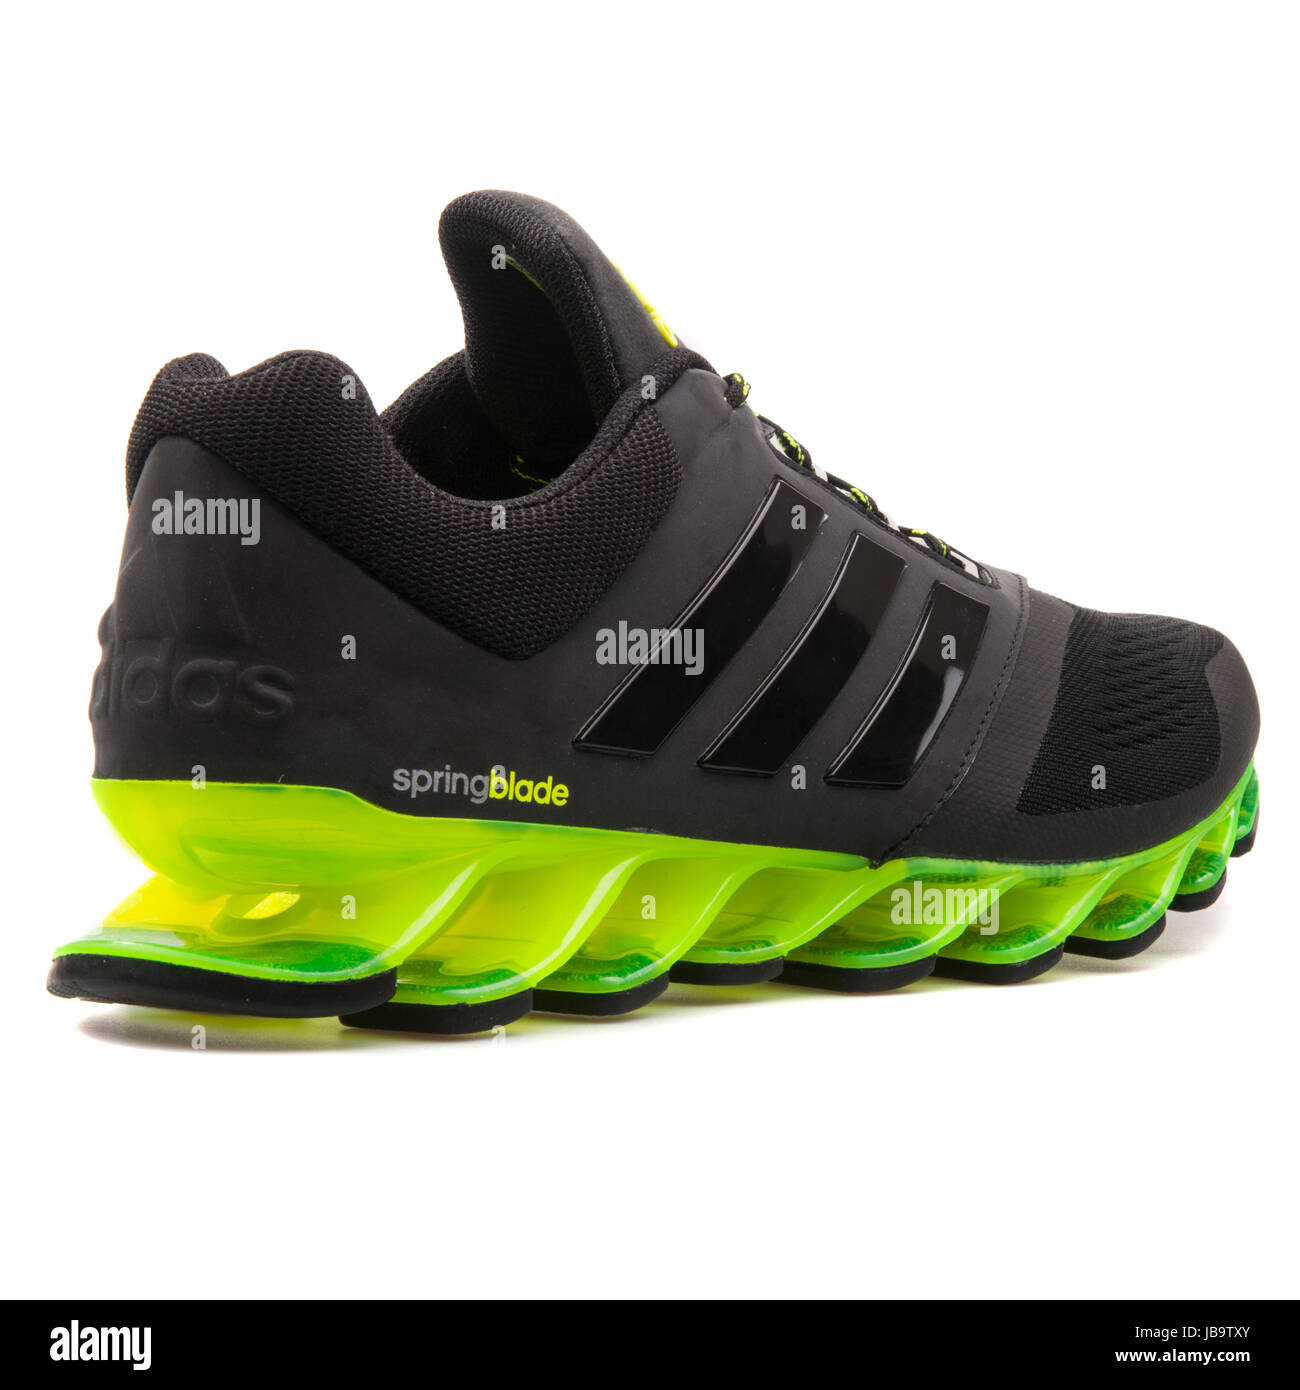 Telemacos Detallado Marcha mala  Adidas Springblade Drive 2 m Black and Green Men's Running Sneakers Stock  Photo - Alamy